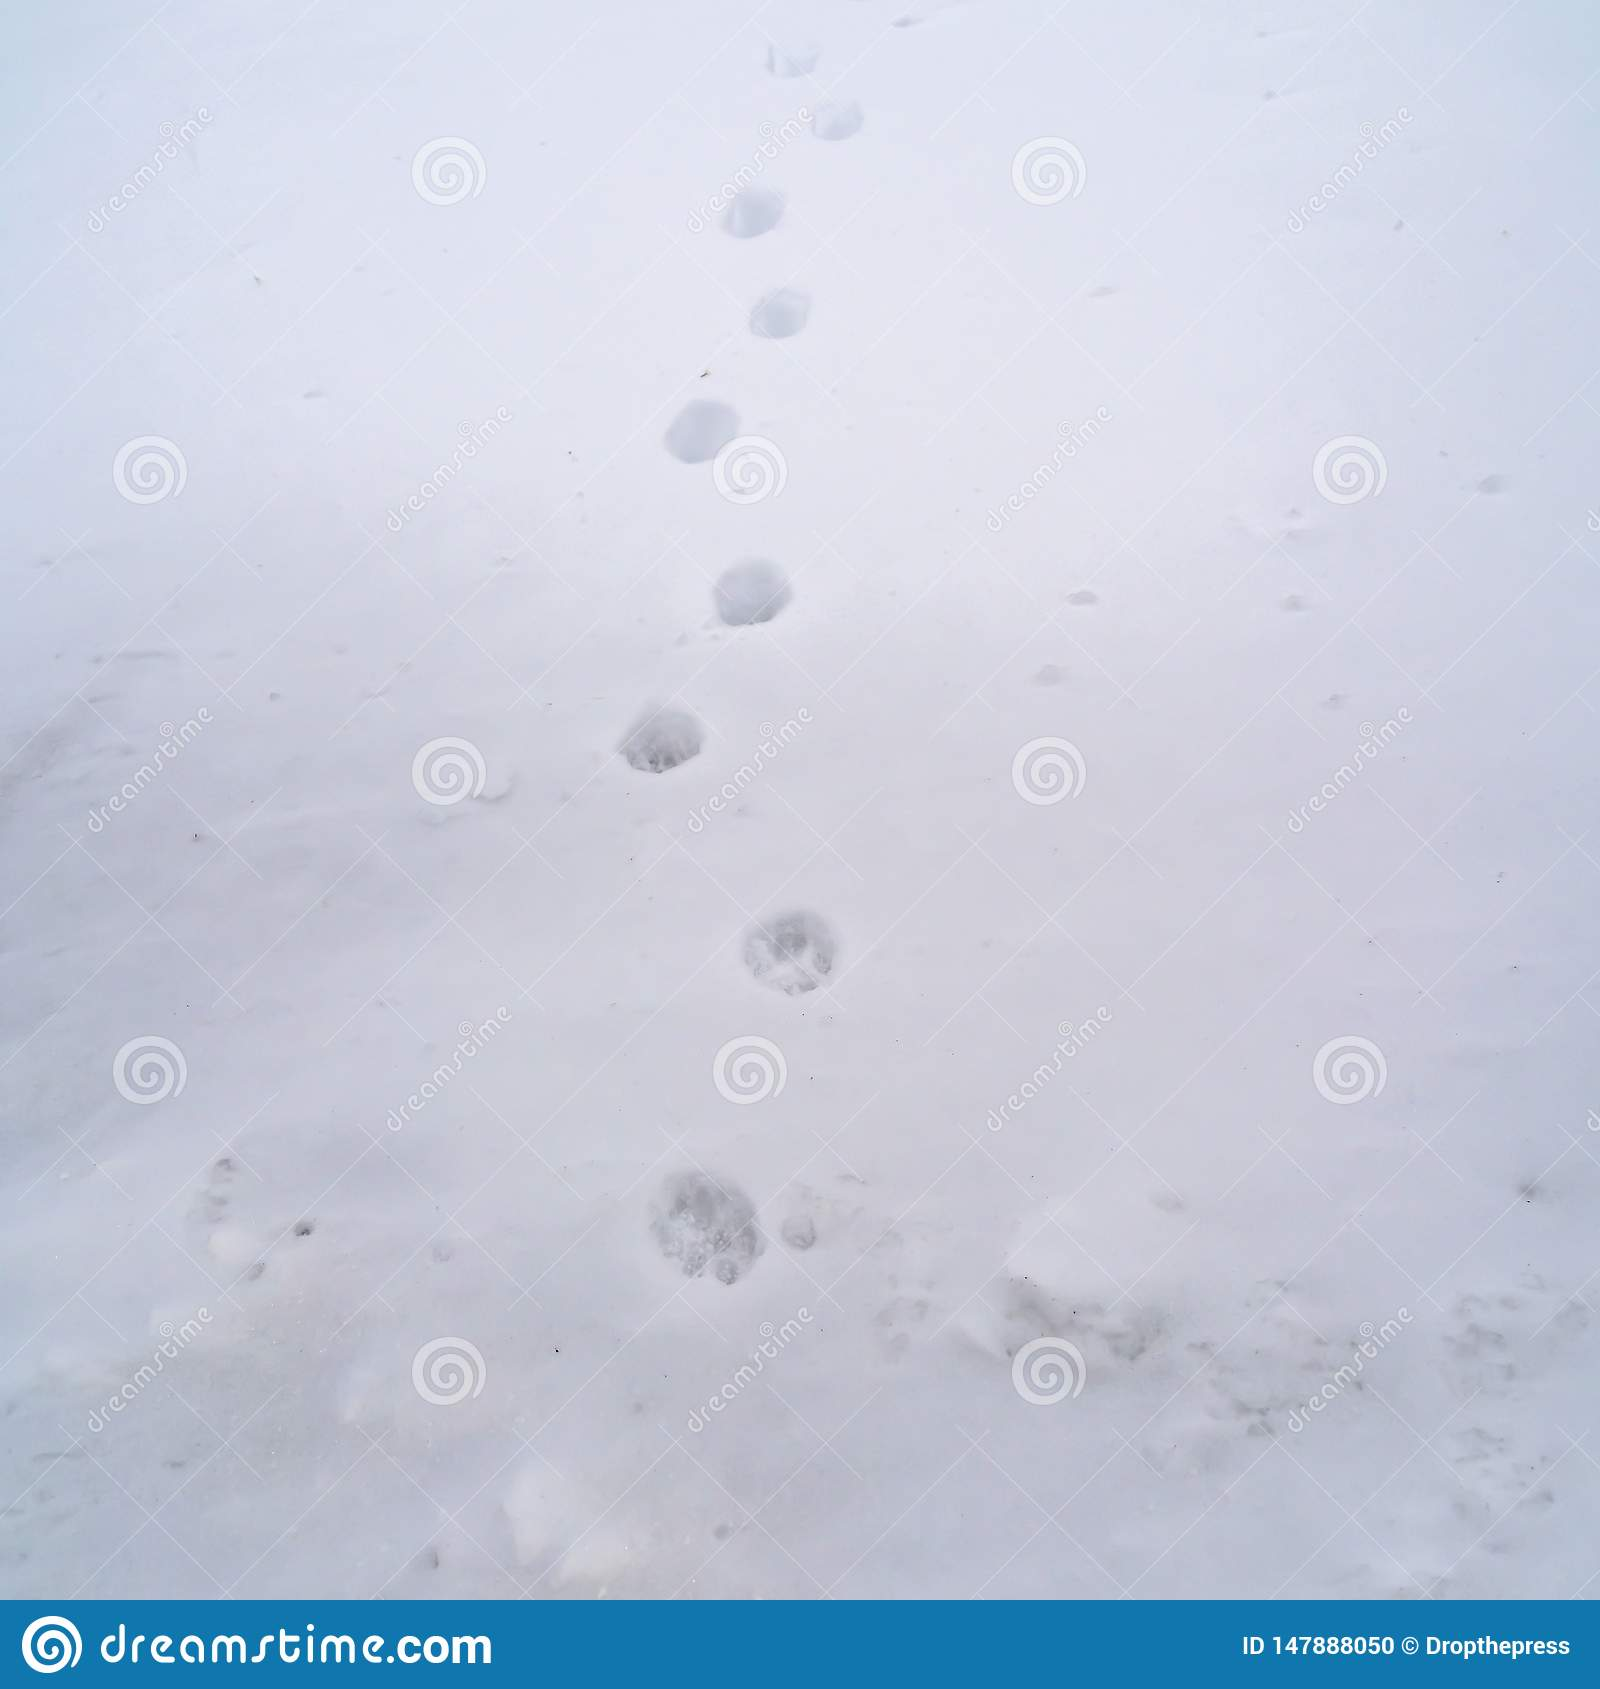 Clear Square Animal Tracks Creating A Pattern On Frosty